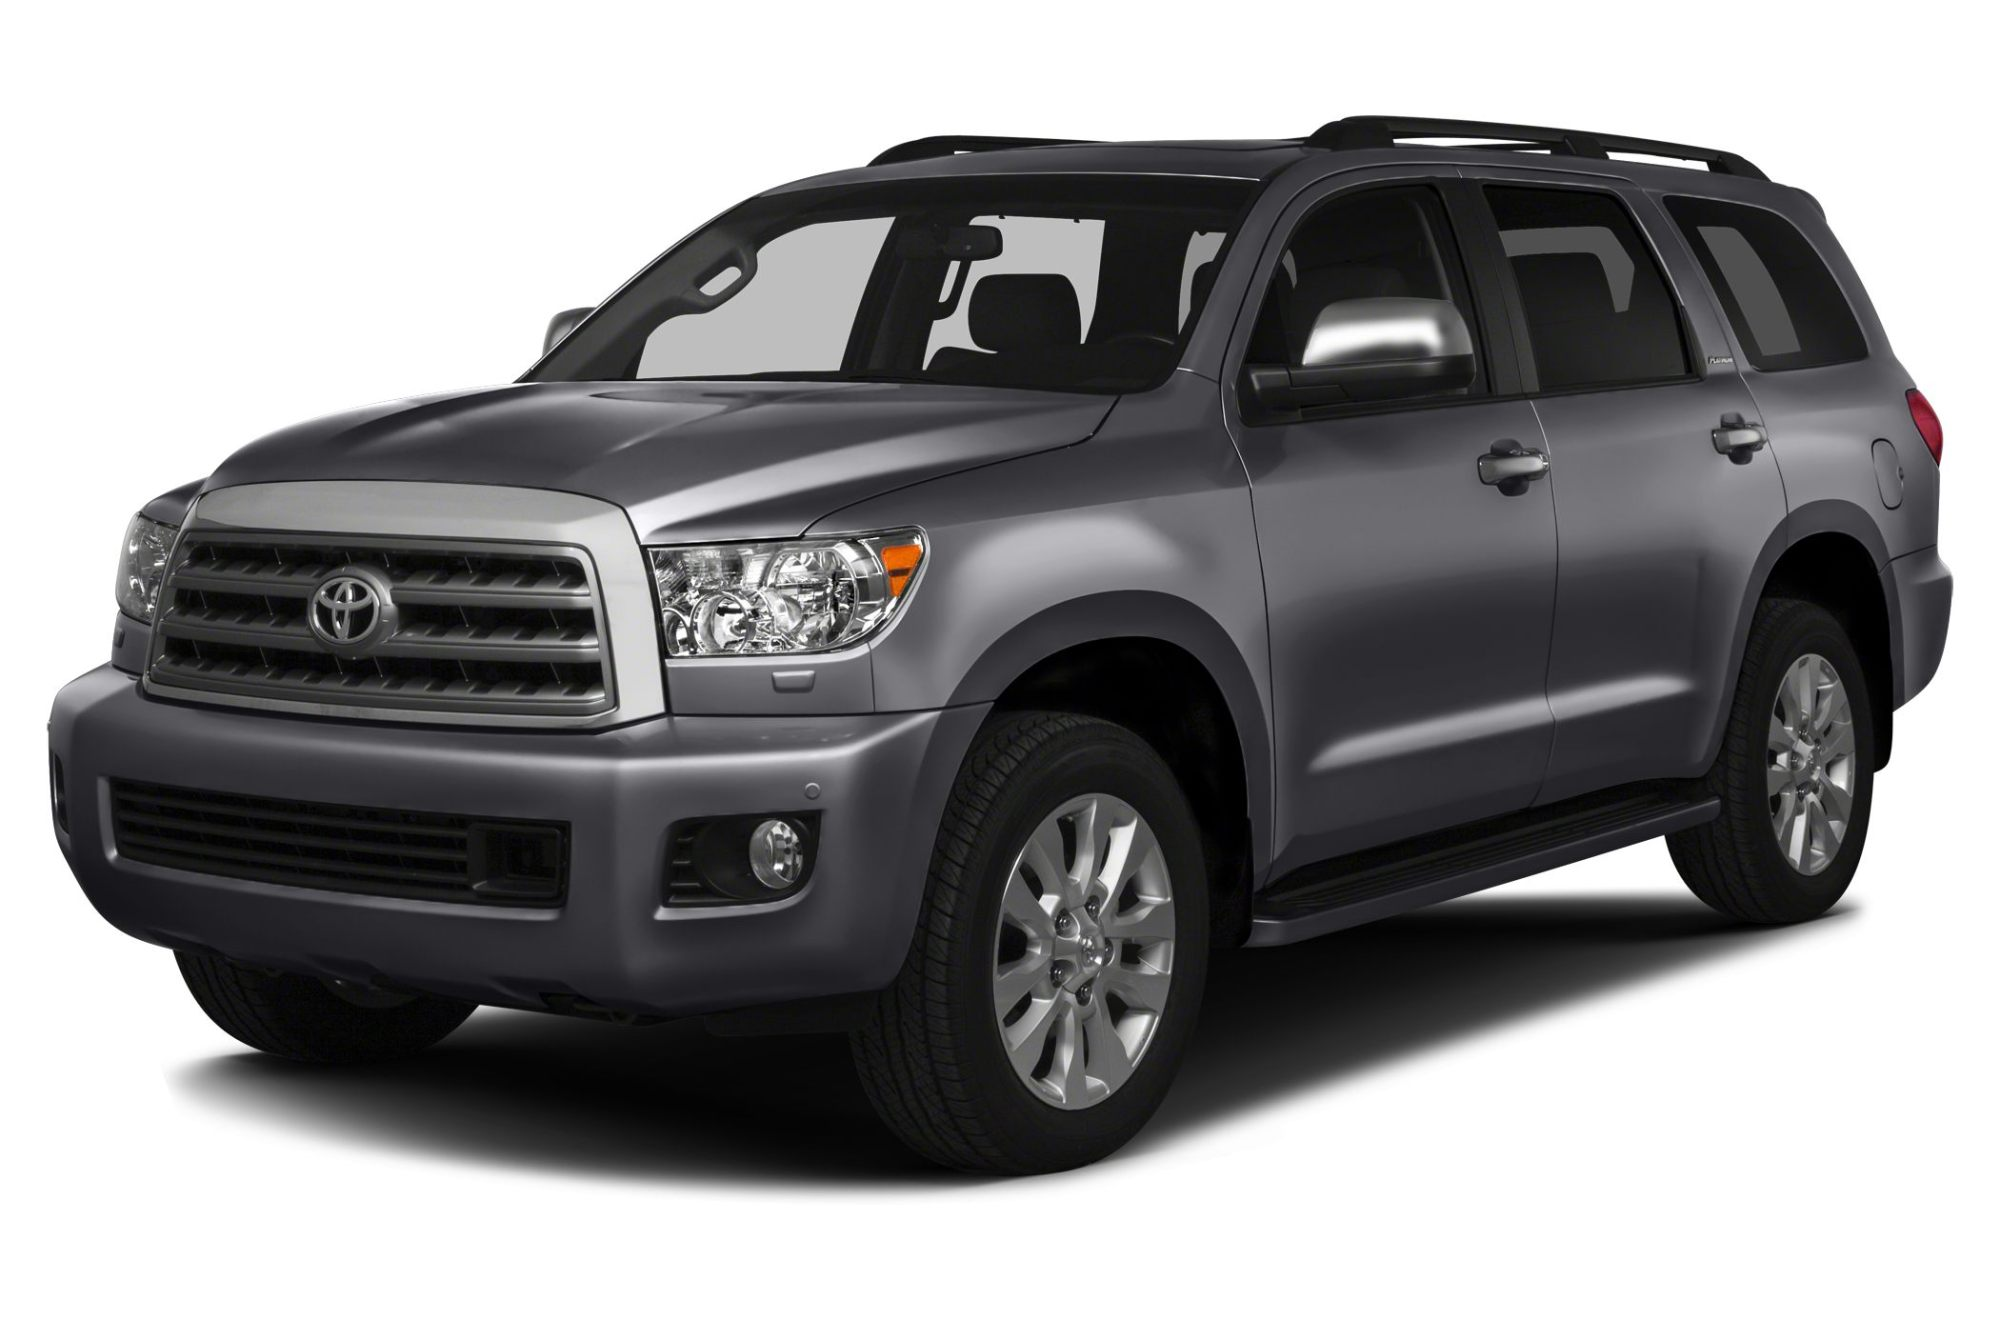 hight resolution of 2012 toyota sequoia platinum 5 7l v8 4dr 4x4 specs and prices 2012 toyota sequoia engine diagram